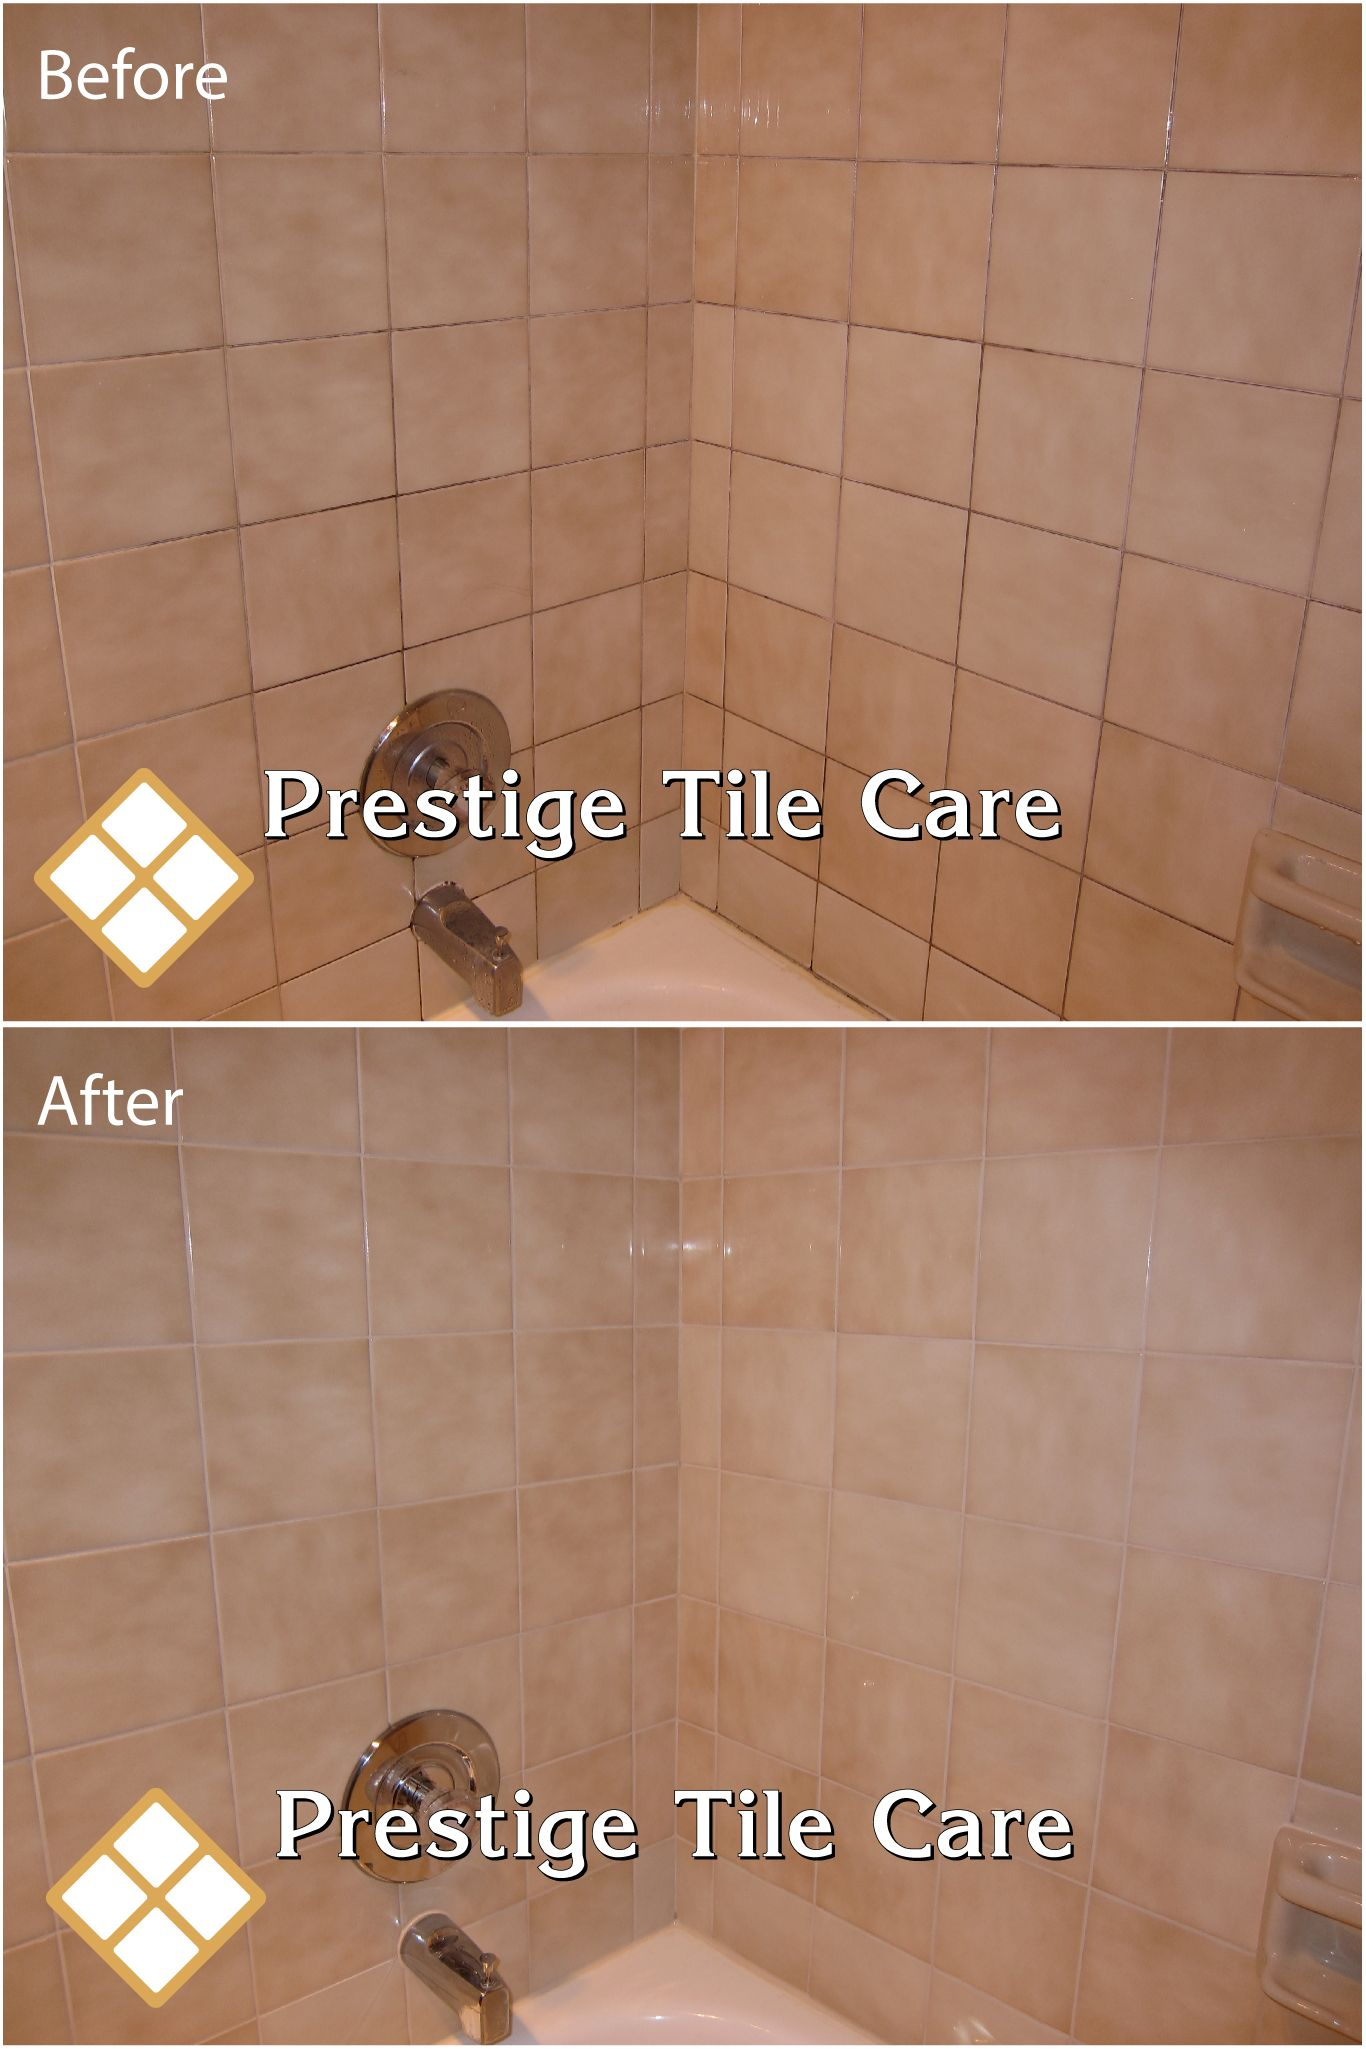 Cleaning Tan Shower Tiles And Regrouting With Bone Colored Grout Shower Tile Tile Care Tile Grout